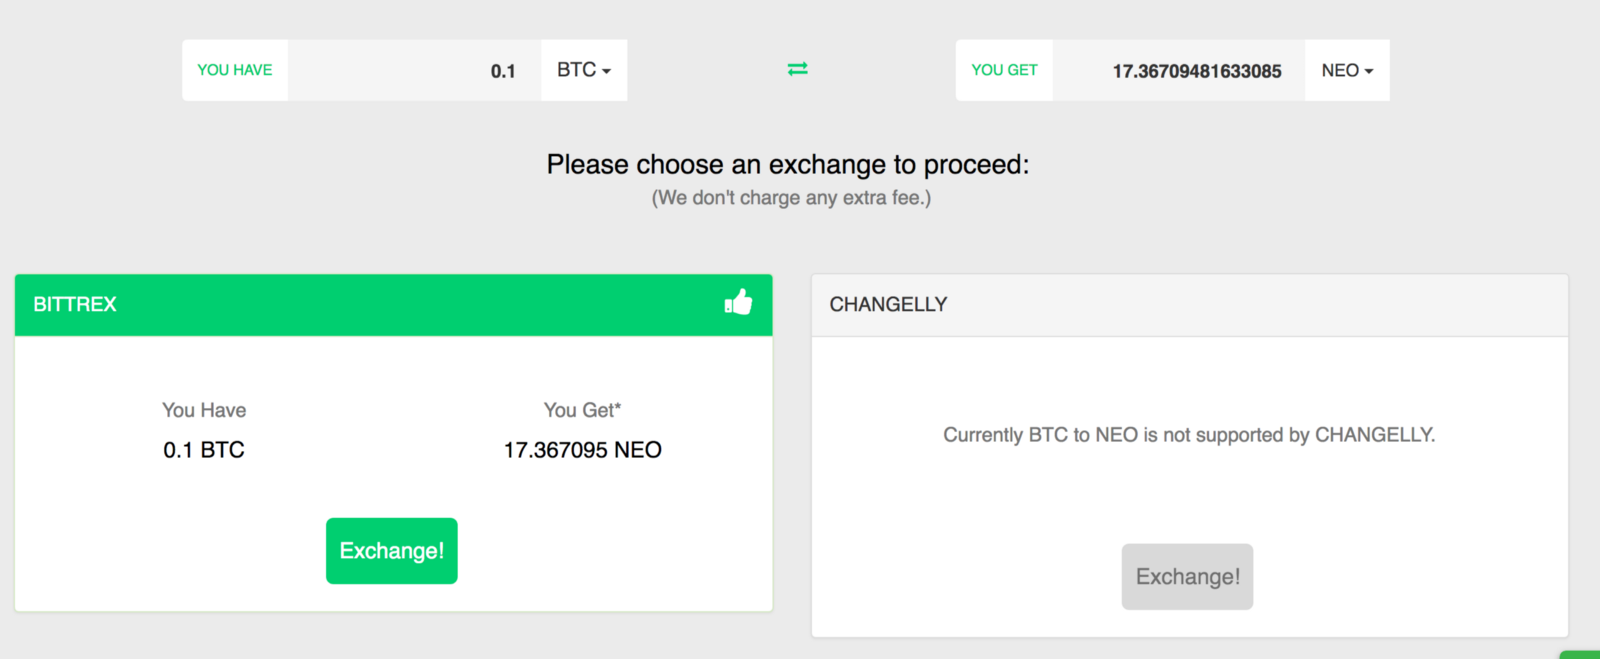 neo cryptocurrency wallet